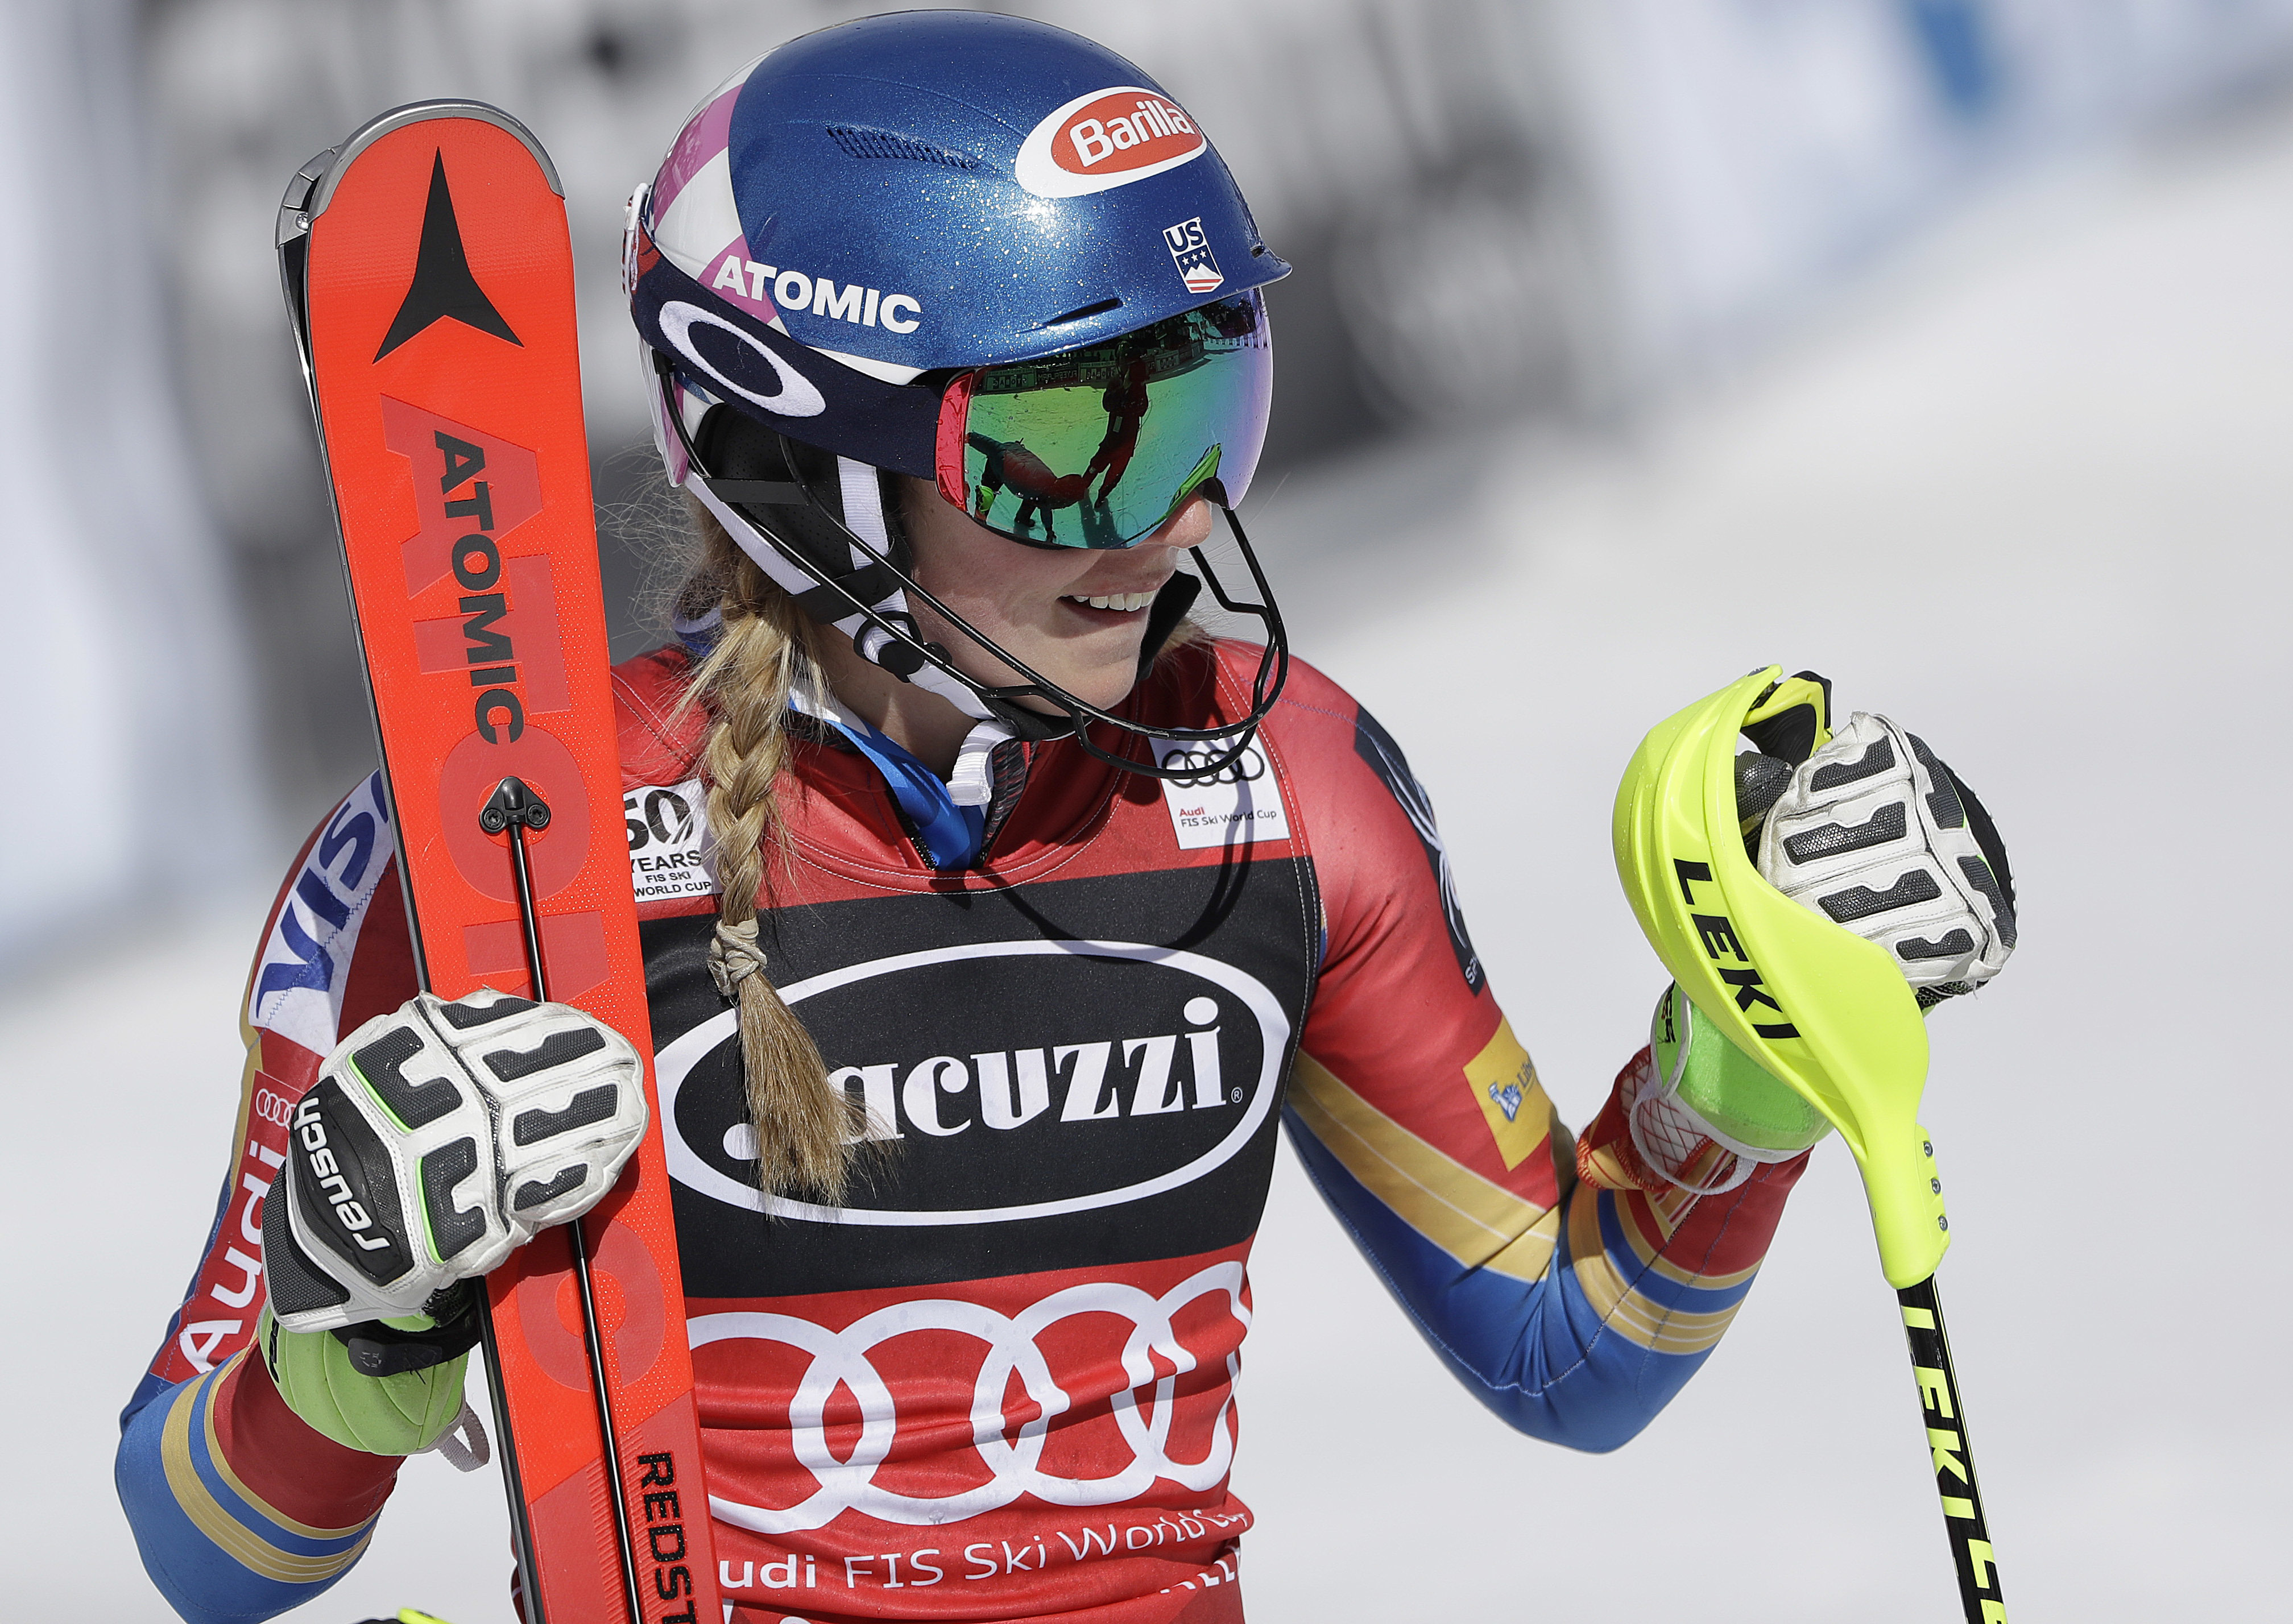 Mikaela Shiffrin smiles after the second run in the women's World Cup slalom competition Saturday, March 11, , in Olympic Valley, Calif. (AP Photo/Marcio Jose Sanchez)